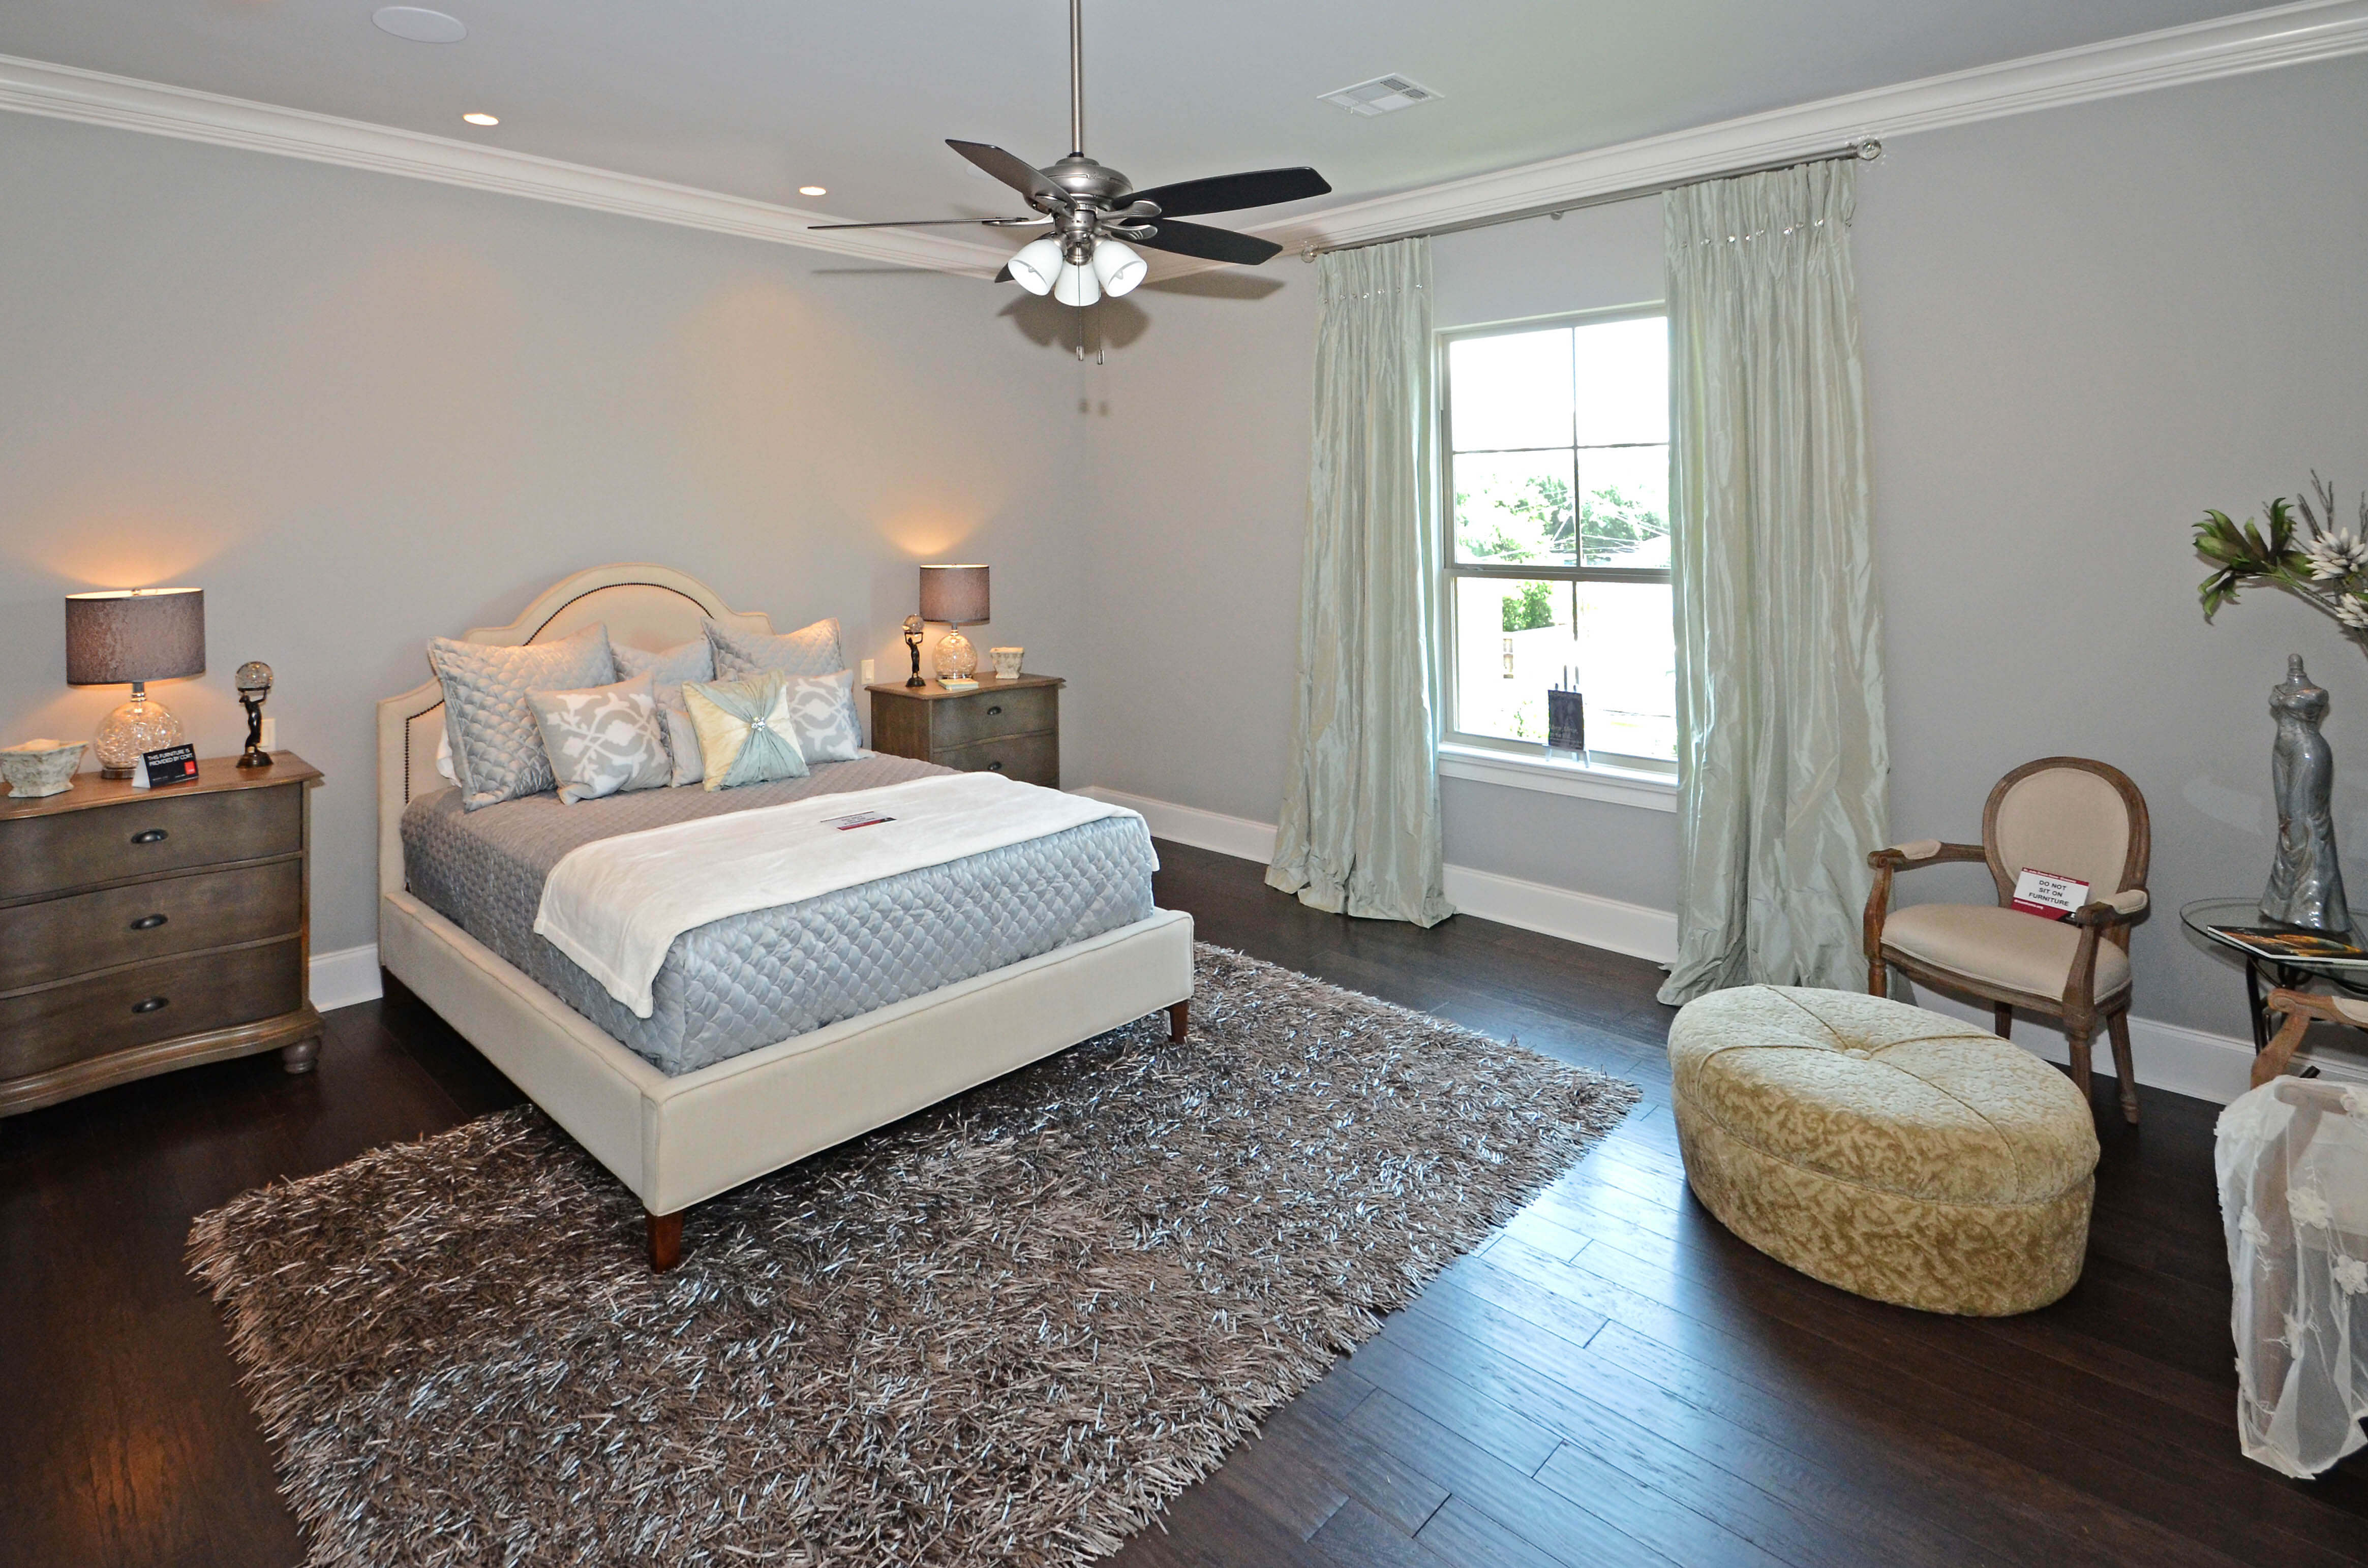 Picture of the st jude dream home in new orleans for 2014 for New home giveaway